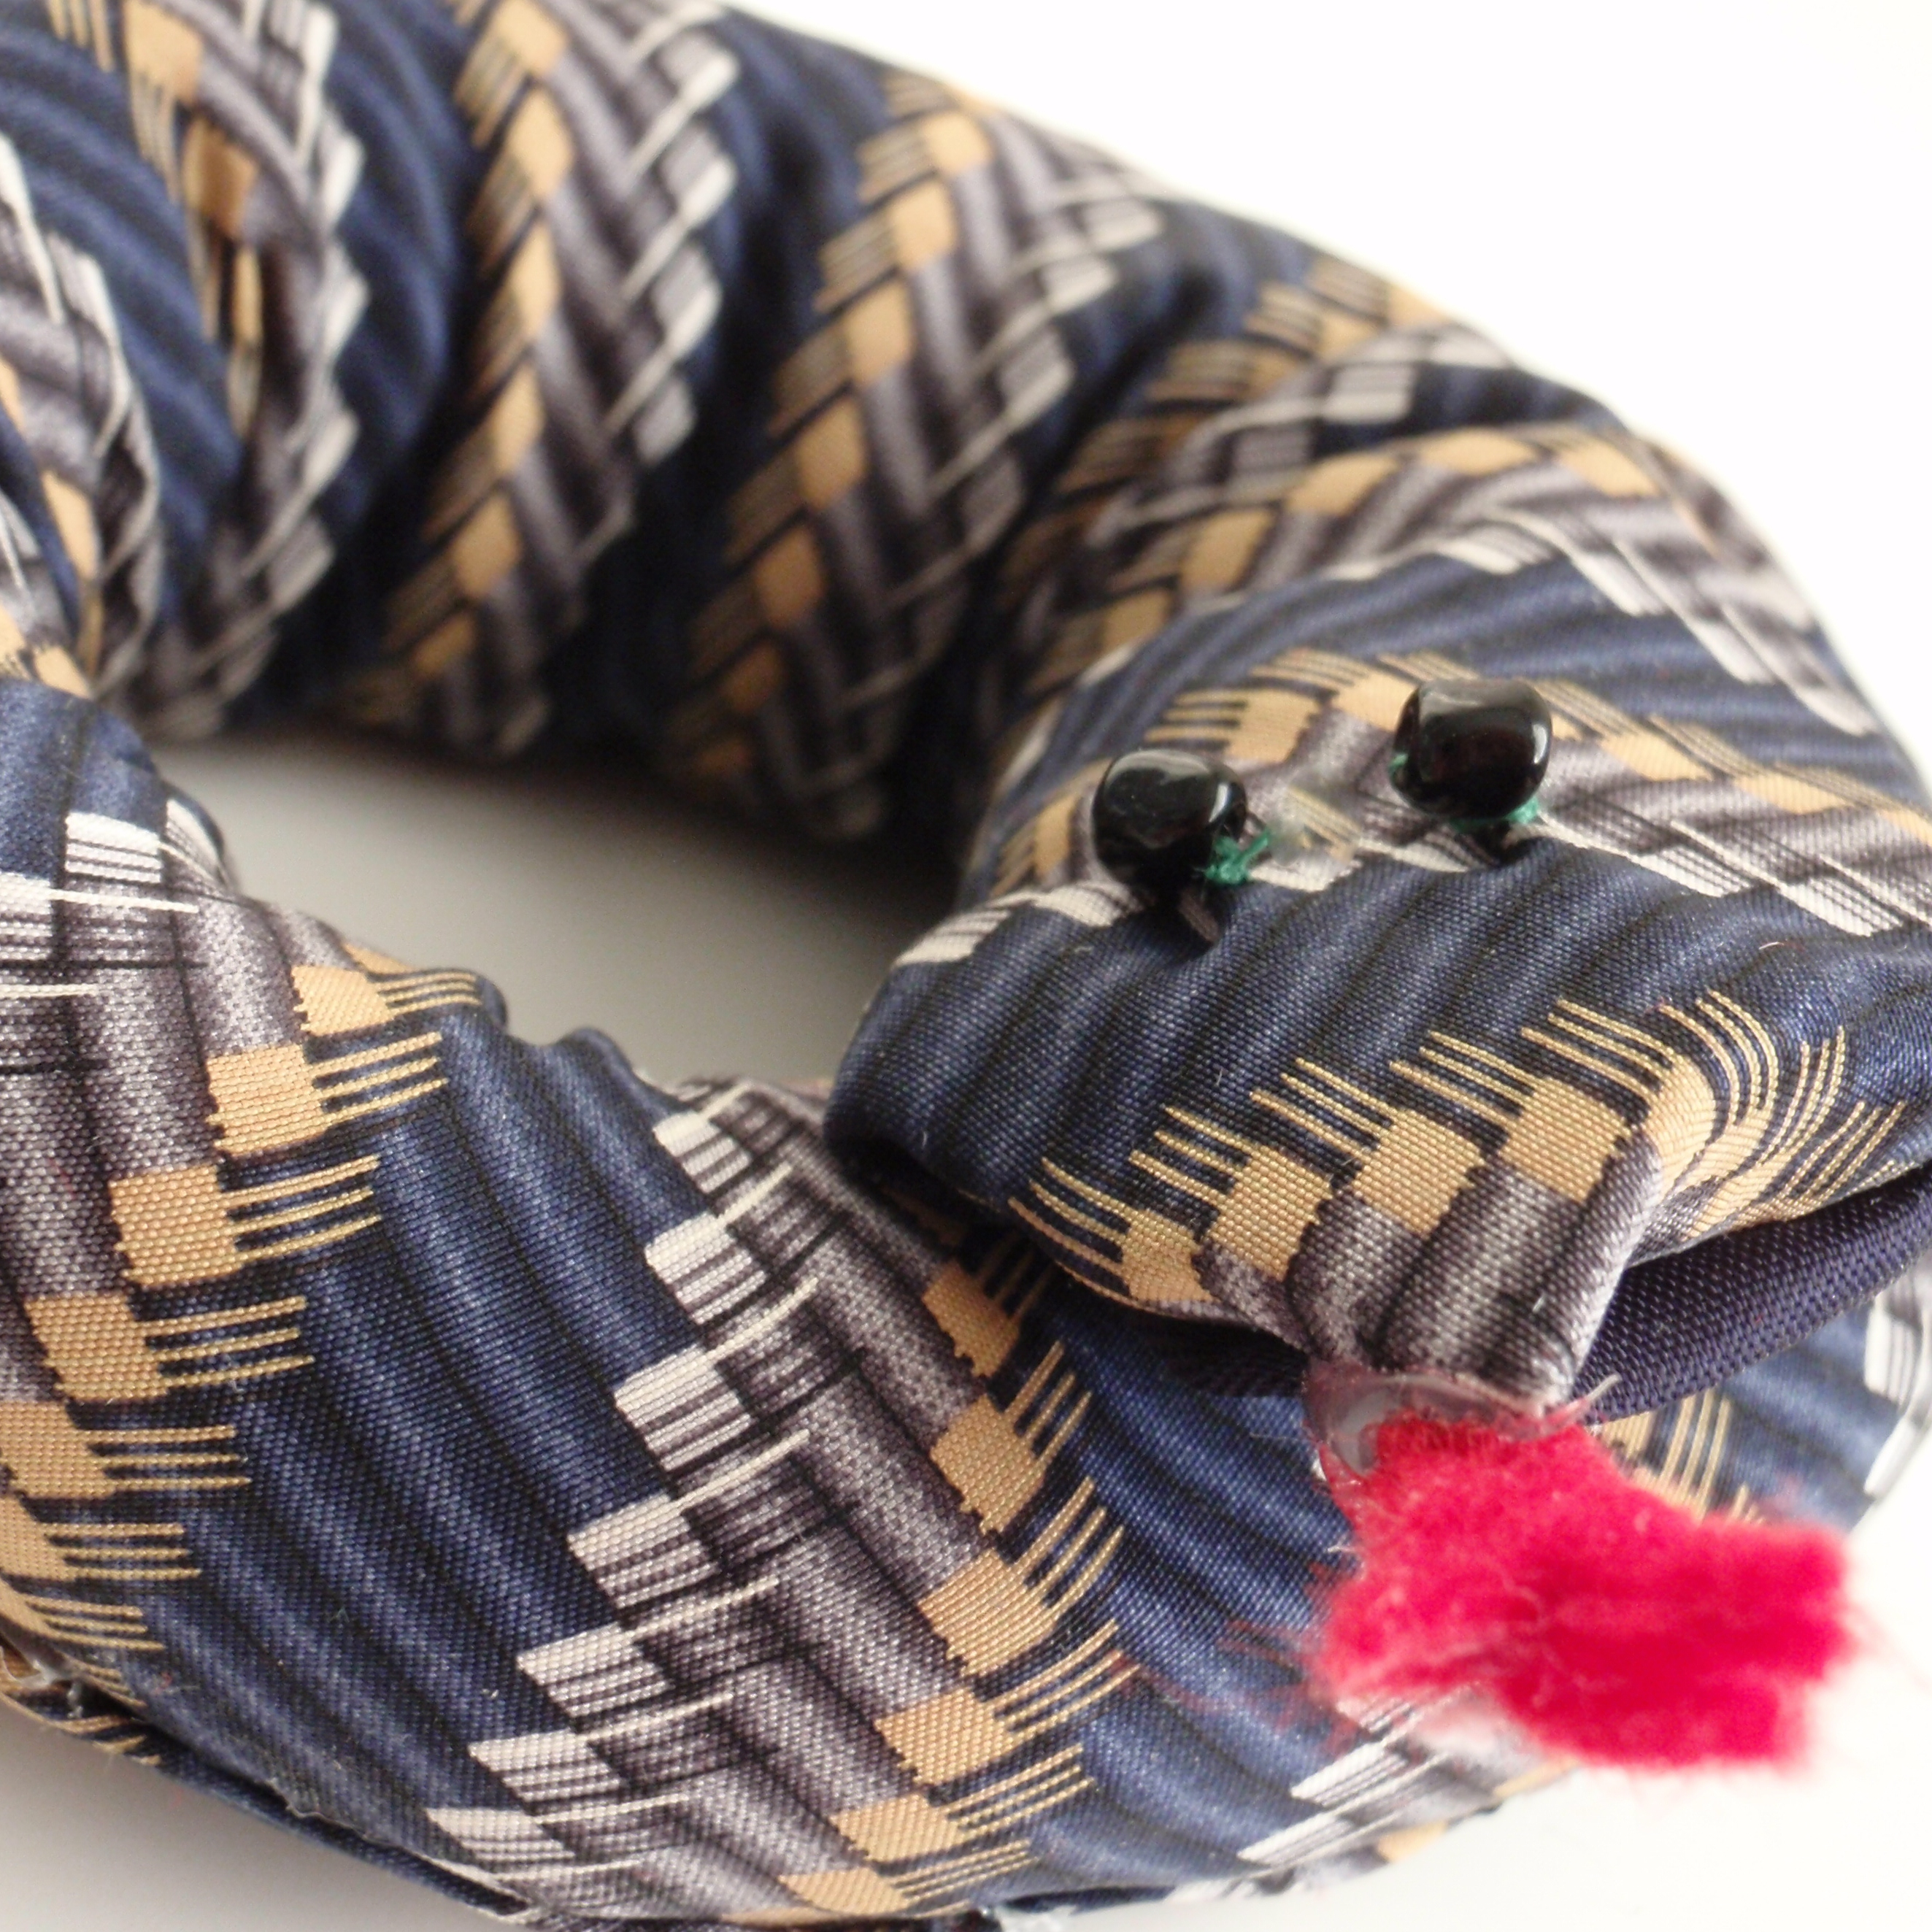 Snake Toy {From a Tie}